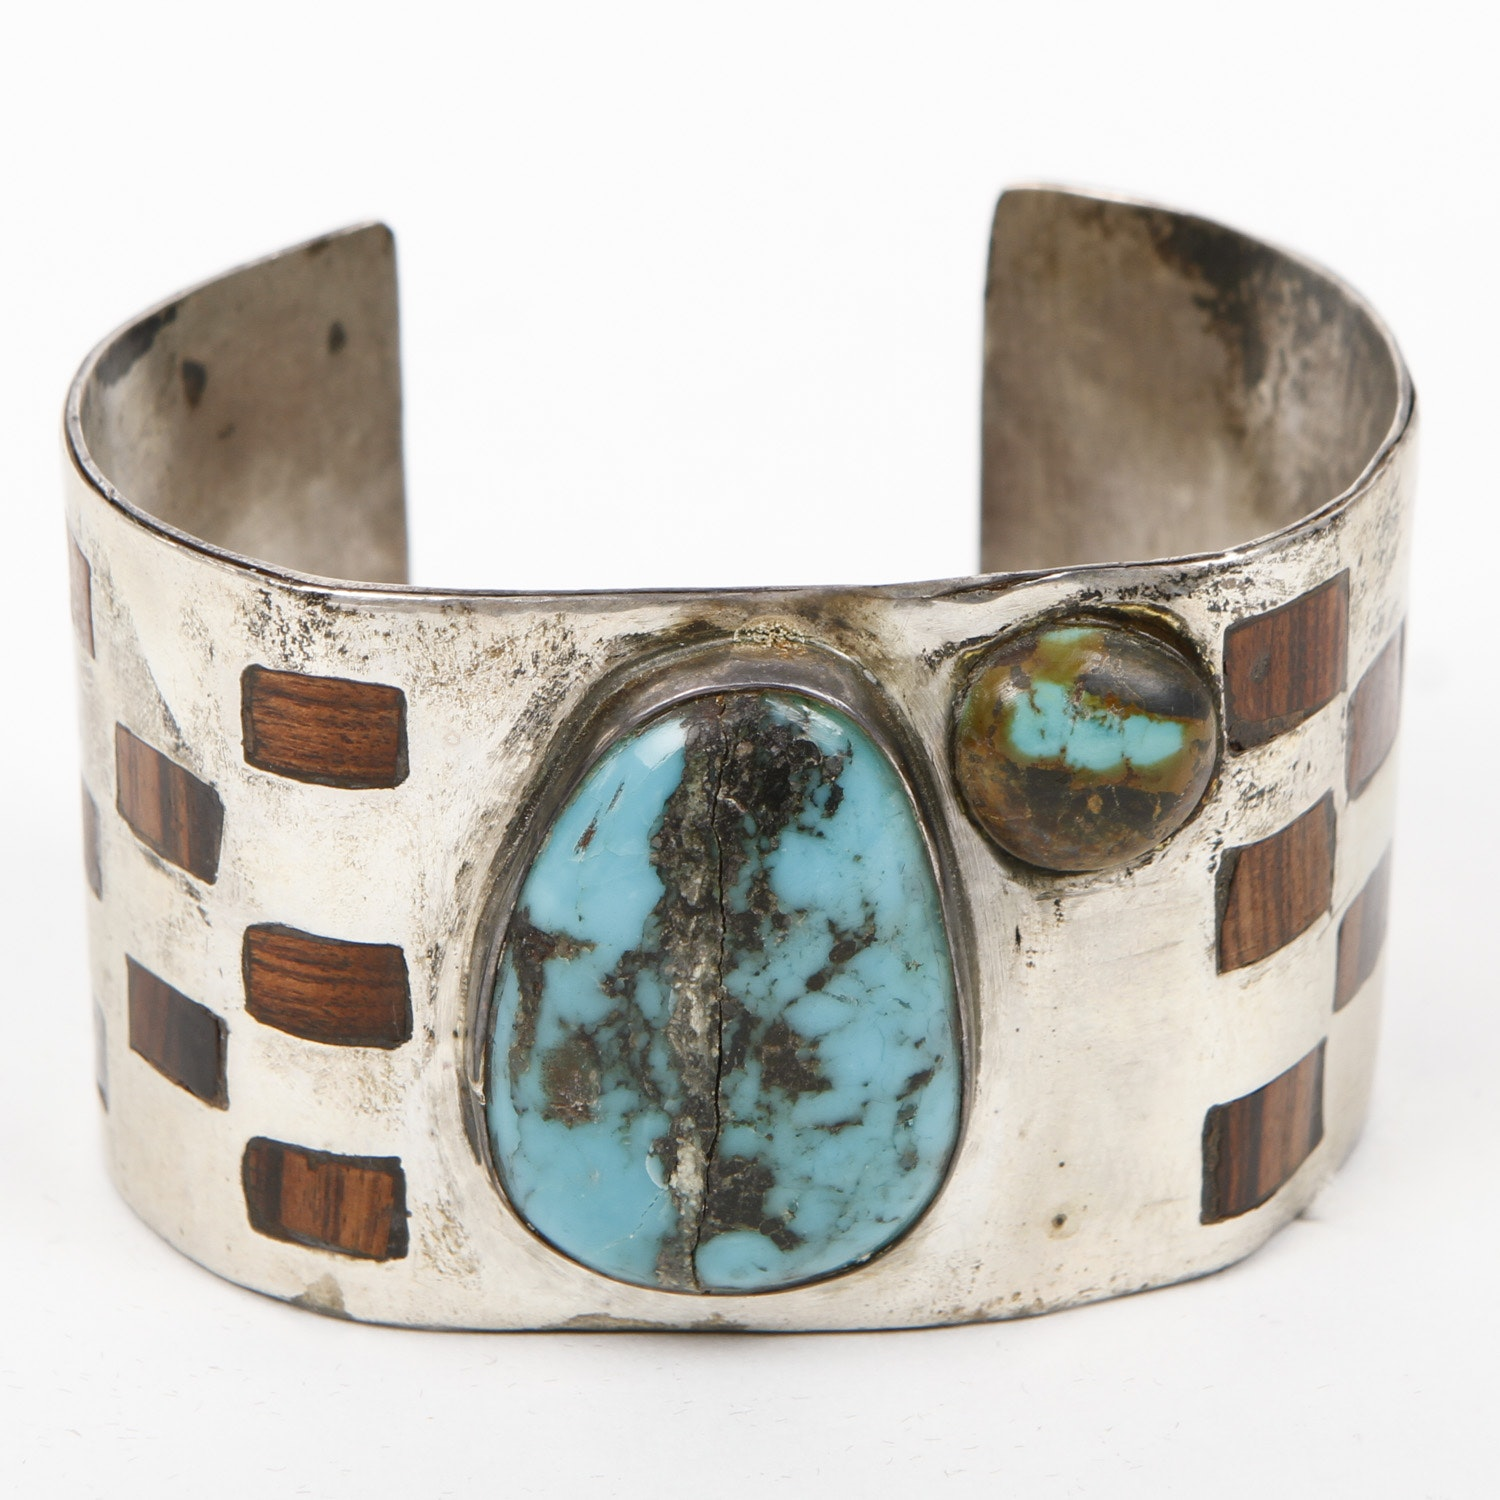 Vintage Sterling Silver, Turquoise, and Inlaid Rosewood Cuff